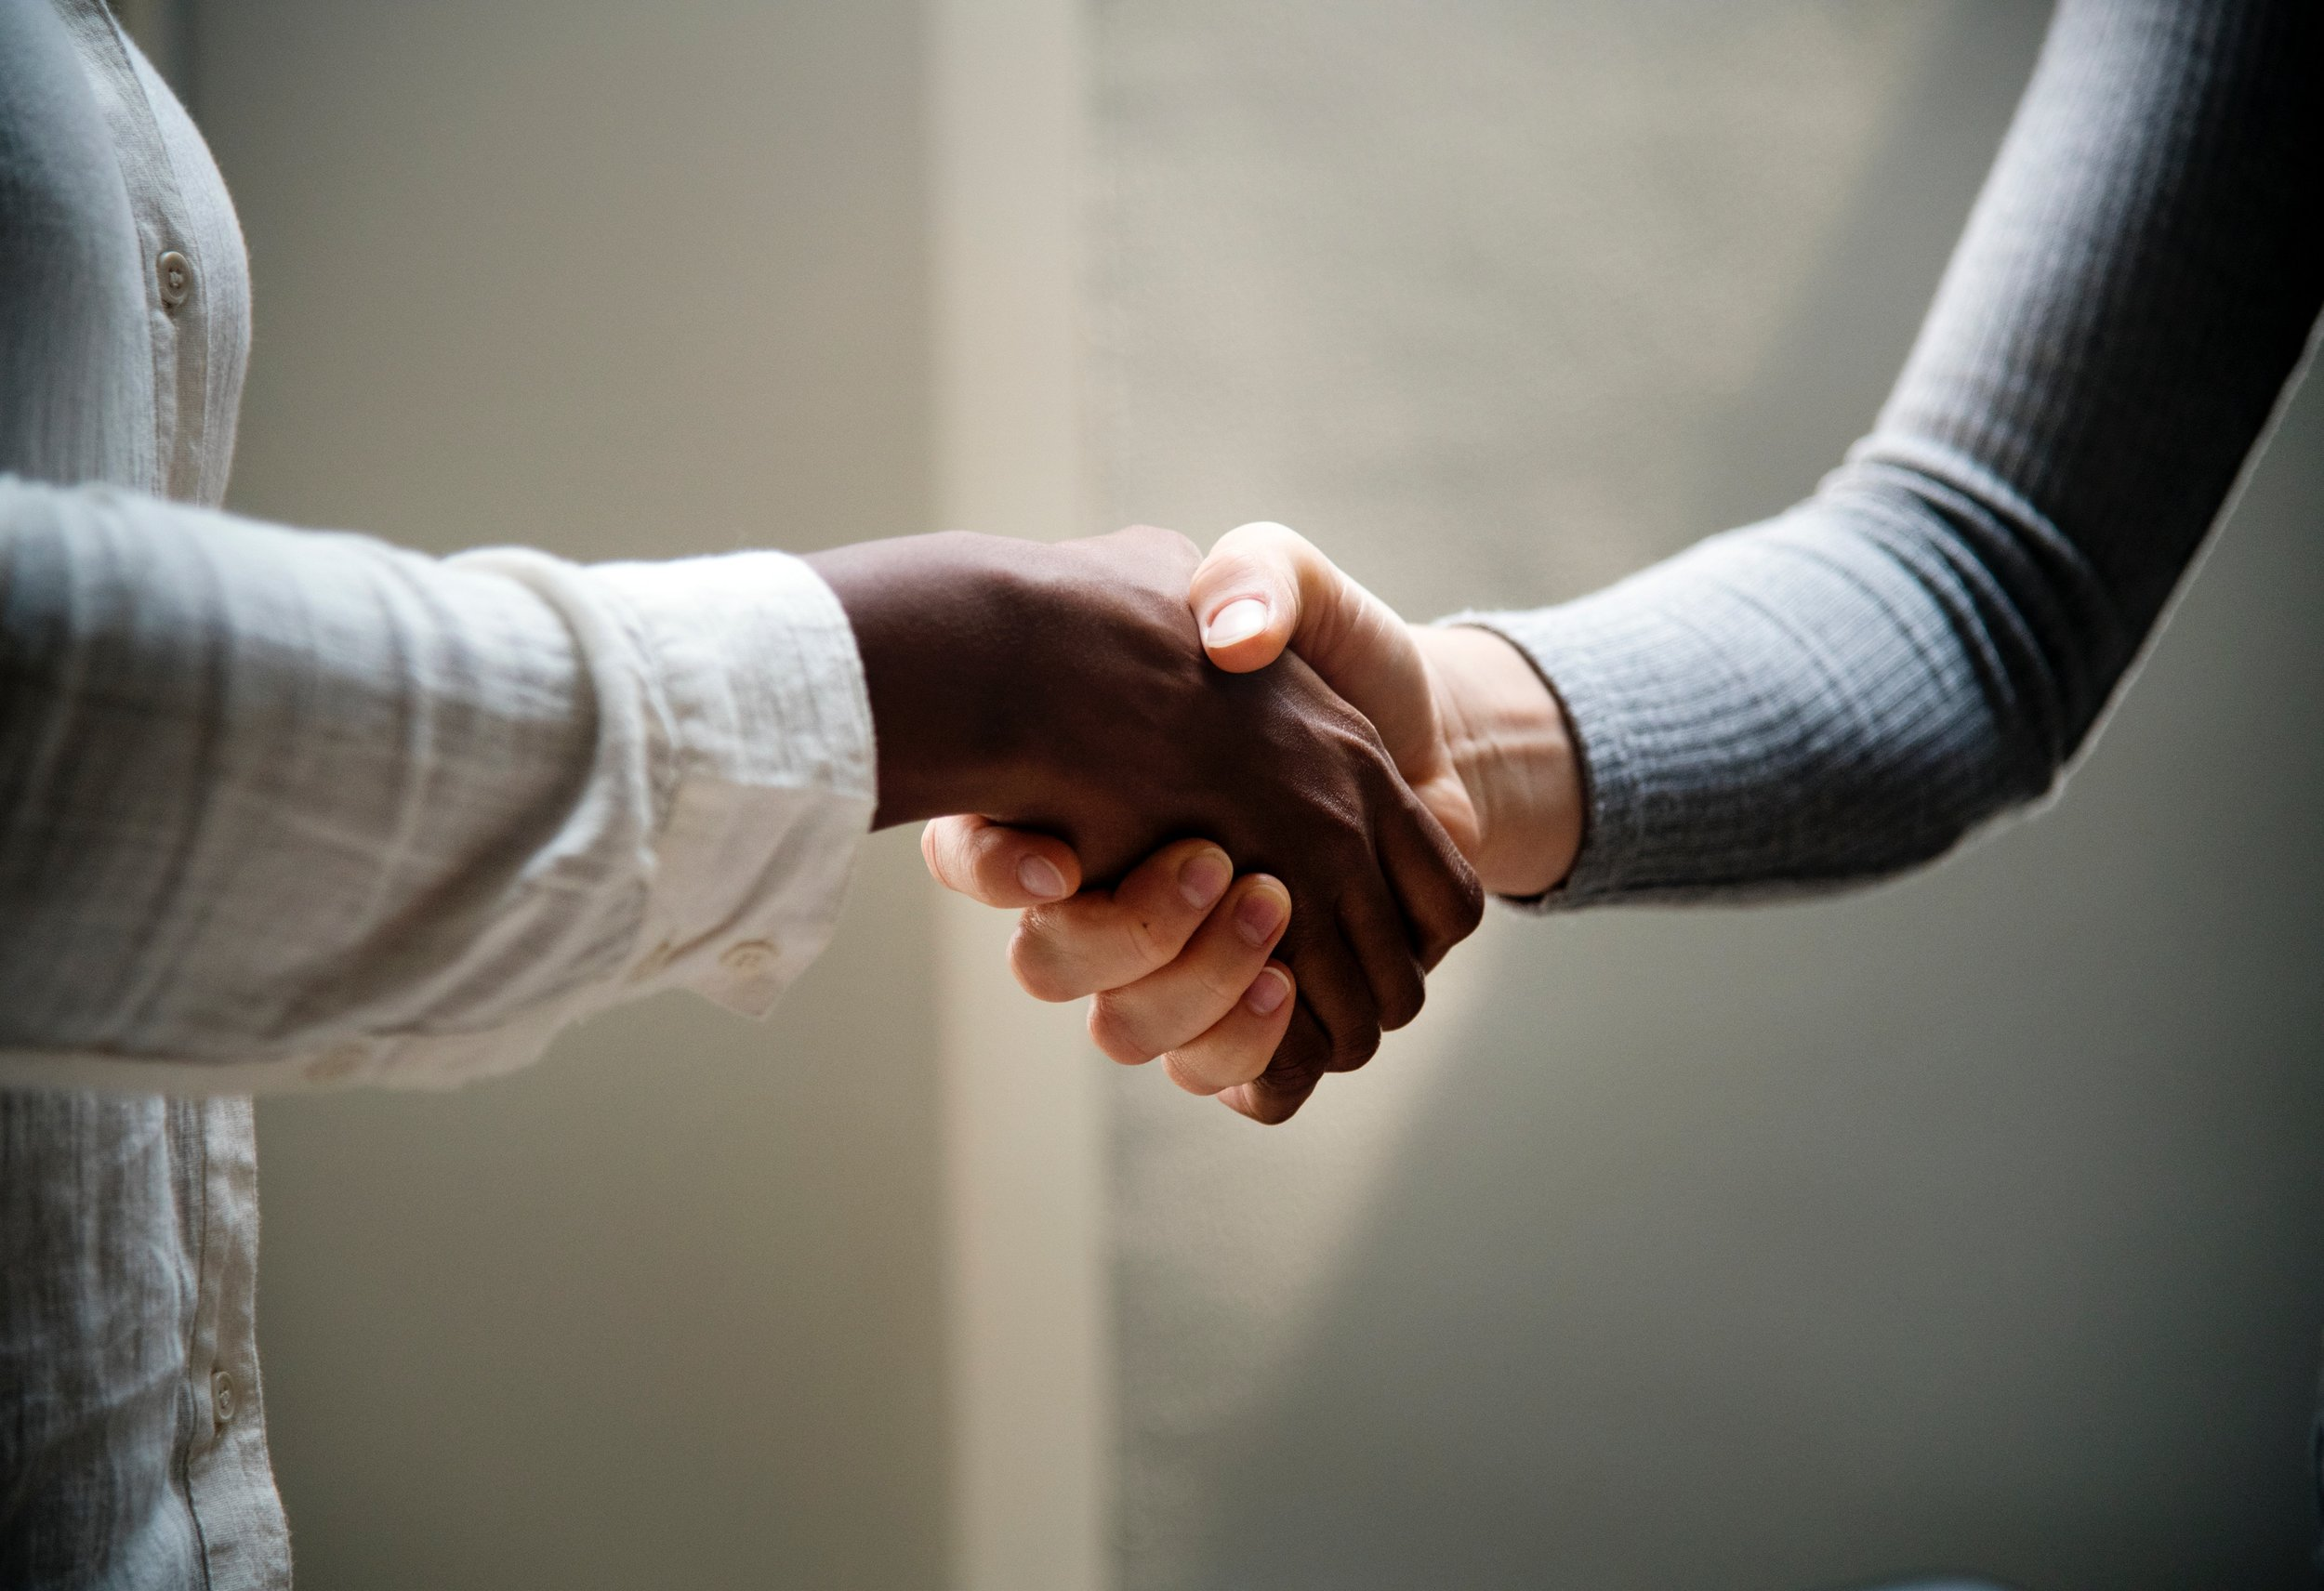 Arc 4: Punishment to Connection - Instead of using punishment as a driving force, connection is fostered so people want to help and support each other.